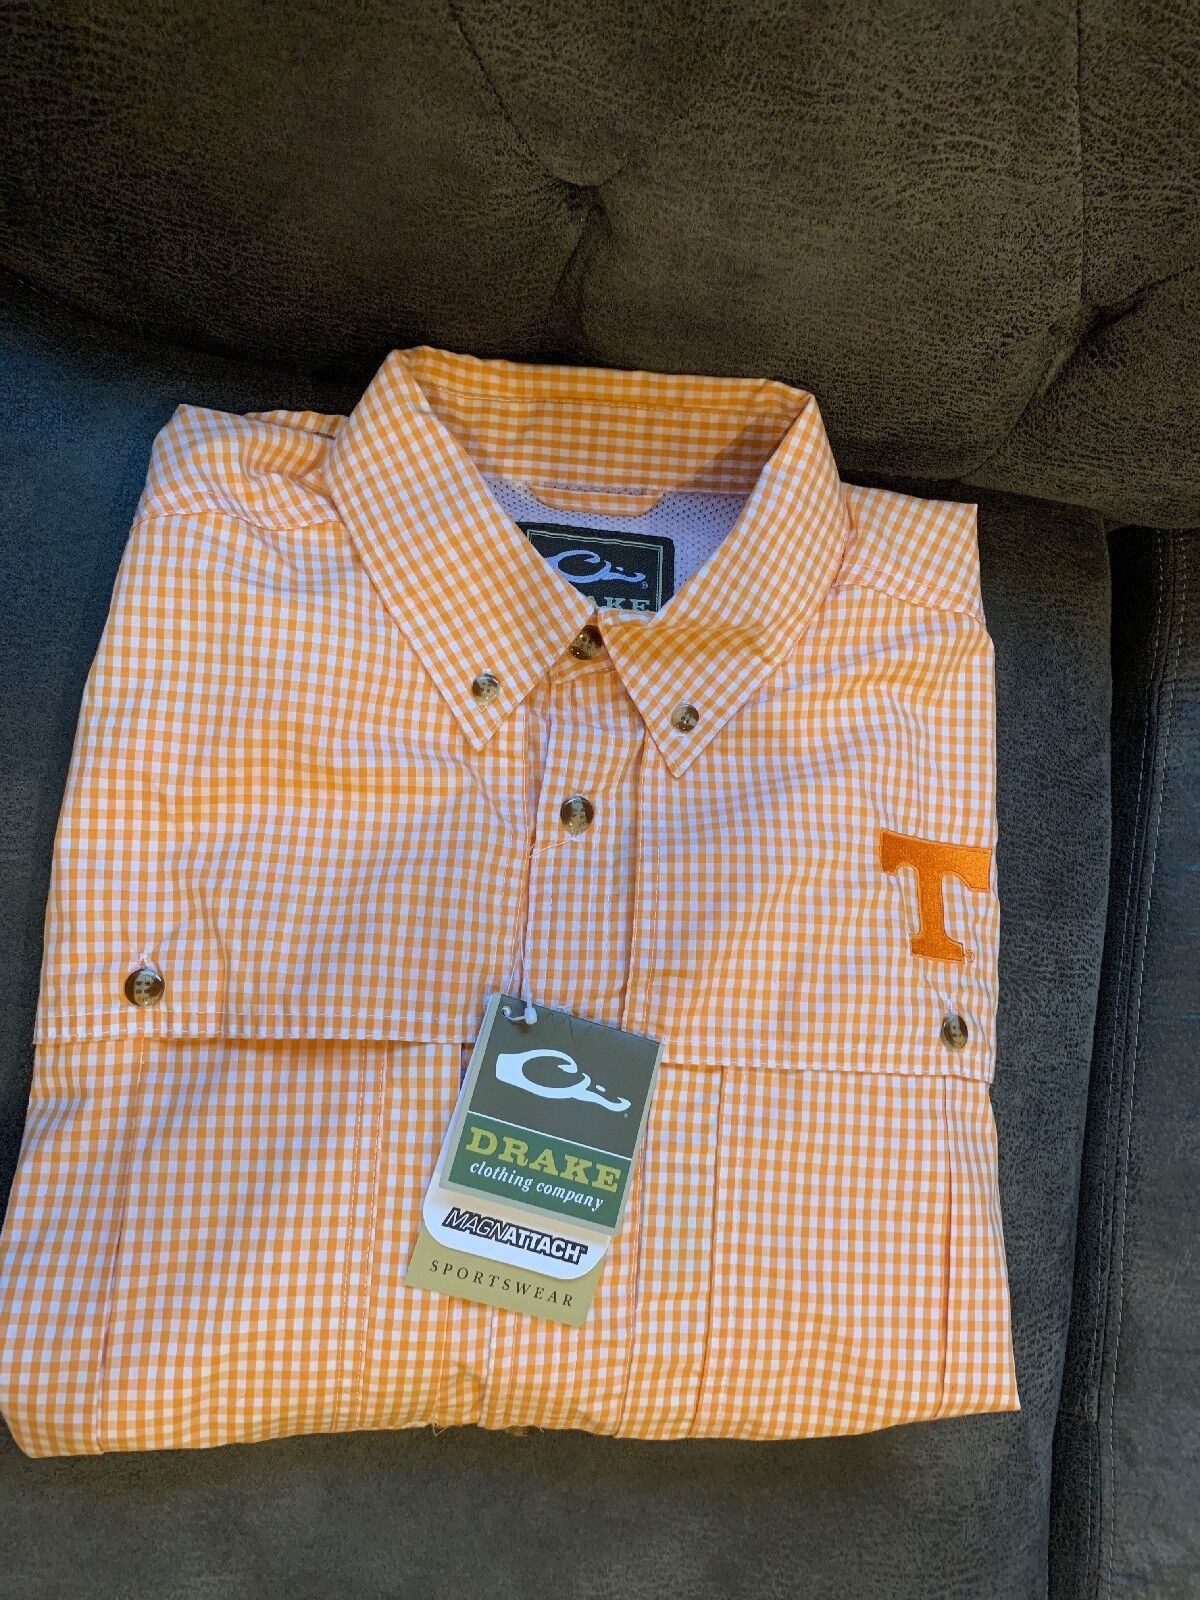 NWT Drake Waterfowl Wingshooter Long Sleeve Men's Small Plaid Tennessee Shirt